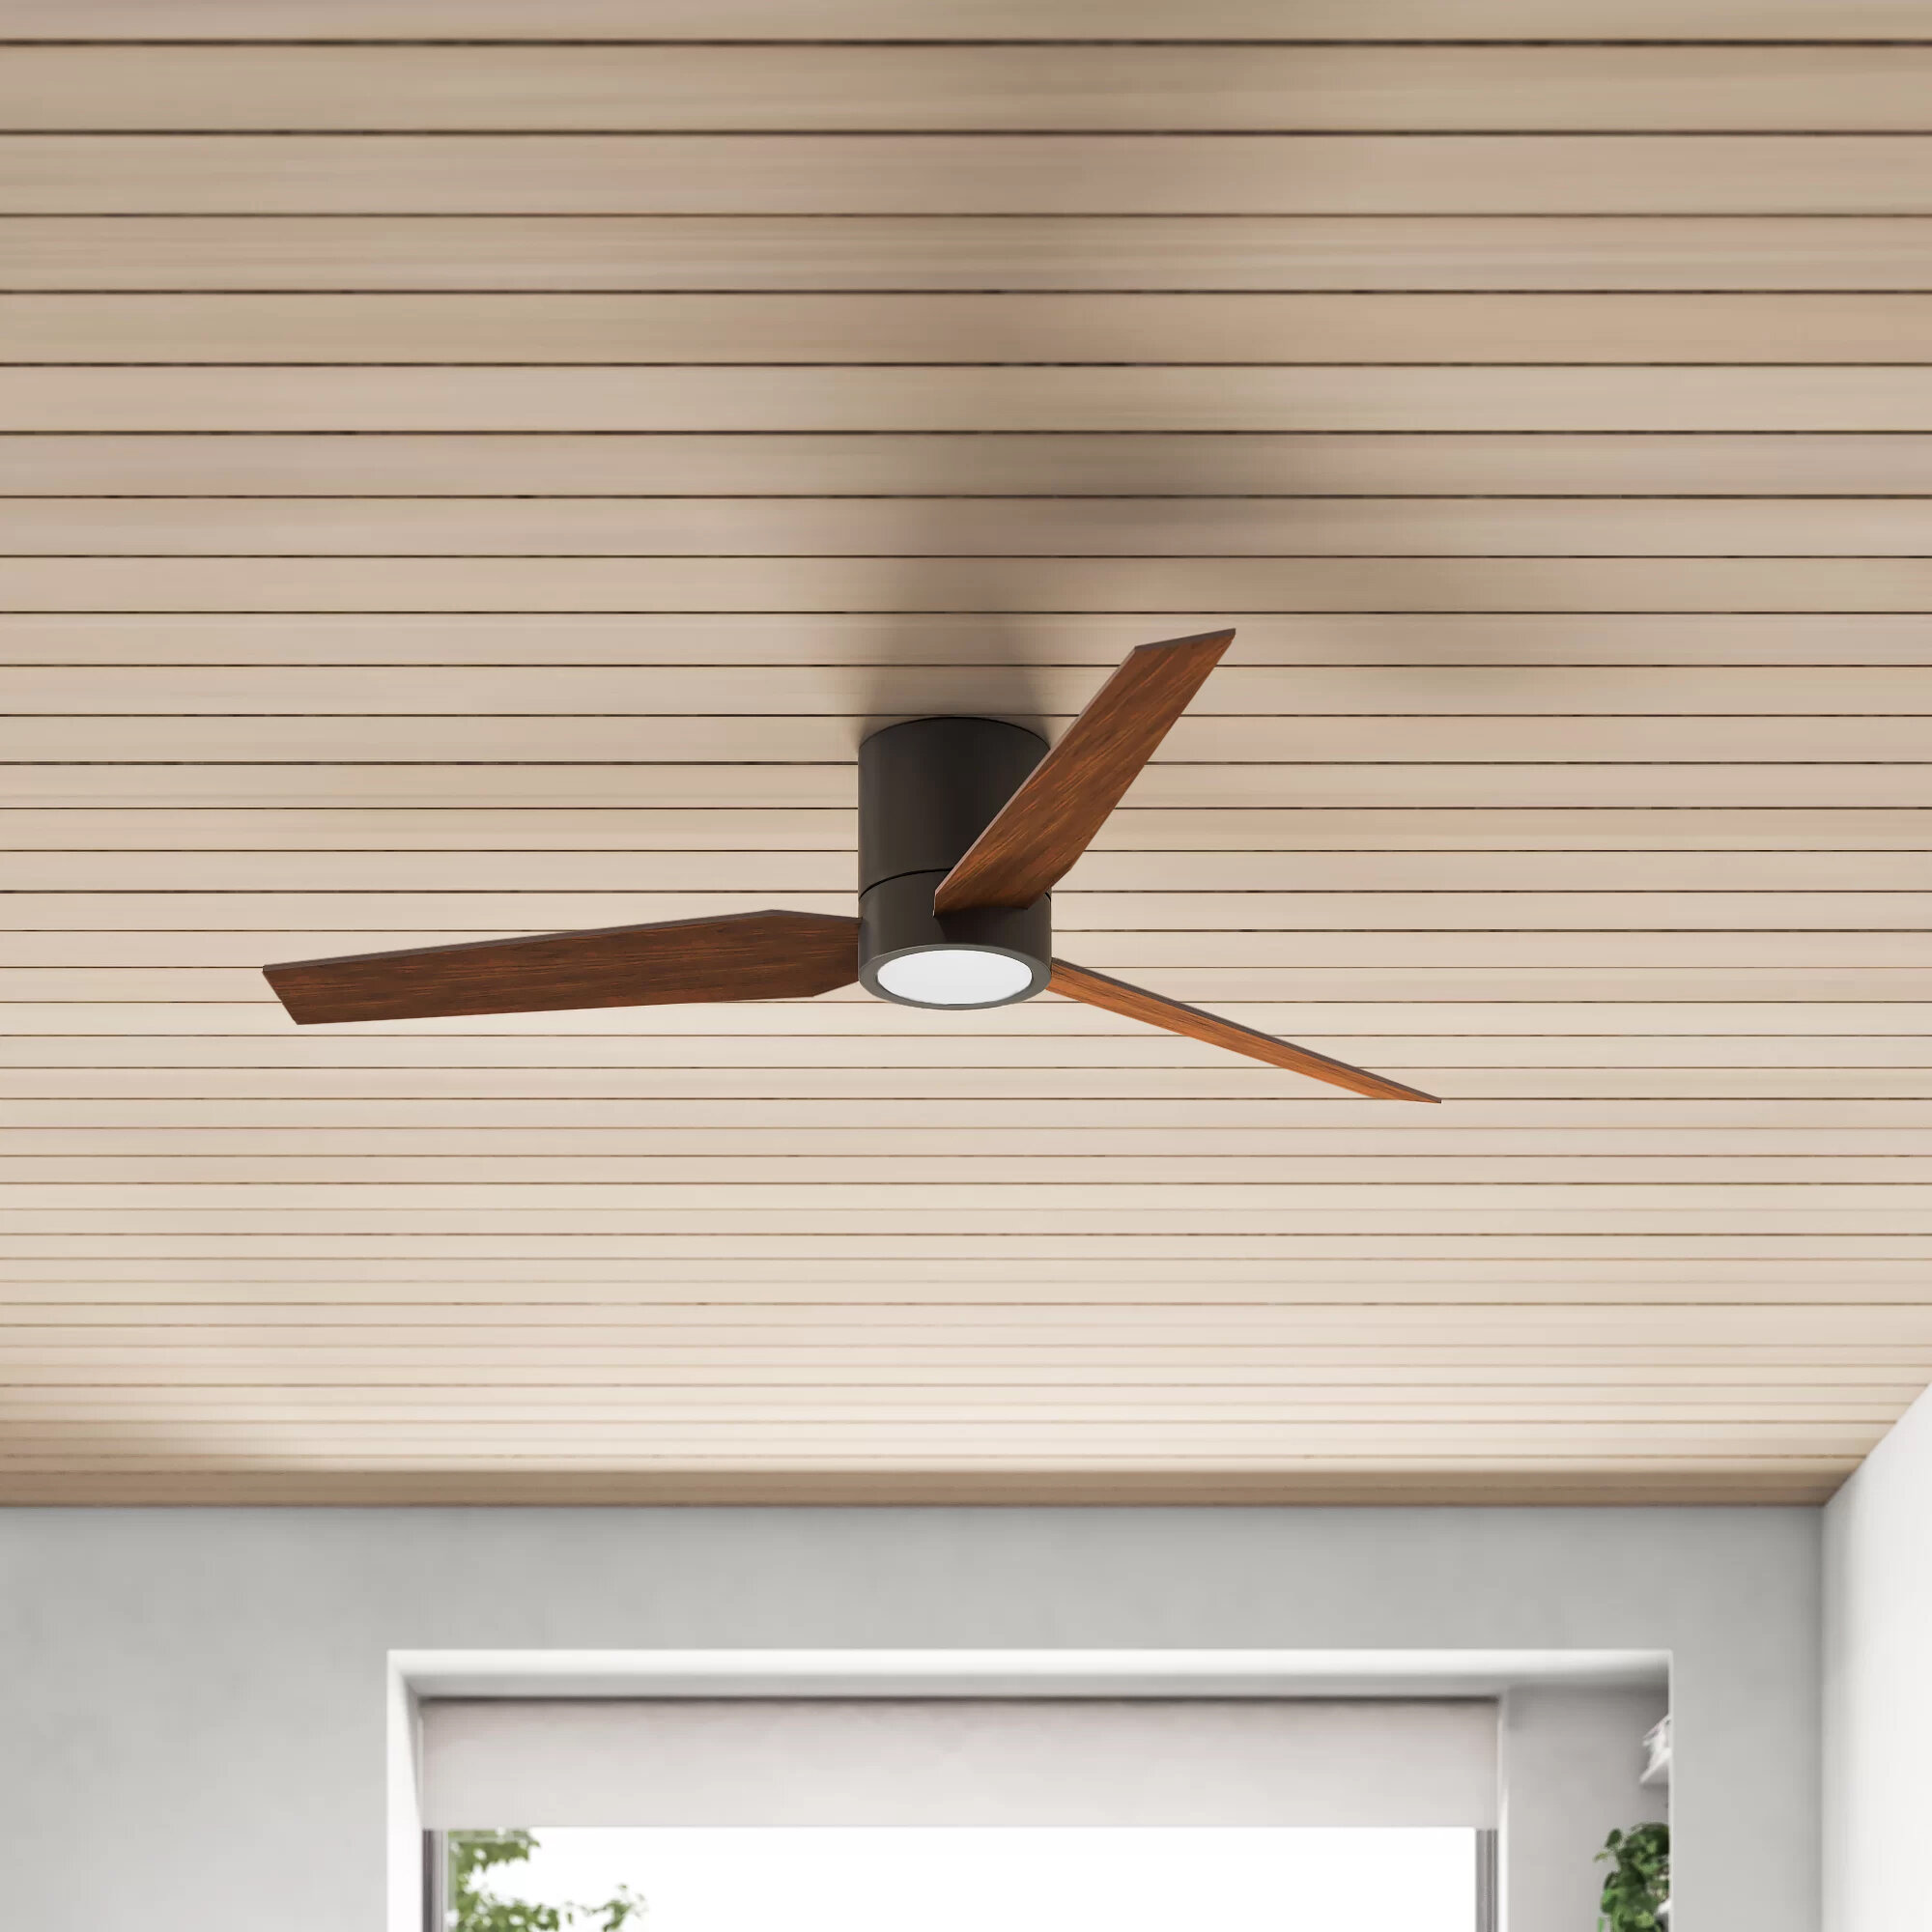 Allmodern 56 Harvin 3 Blade Led Standard Ceiling Fan With Remote Control And Light Kit Included Reviews Wayfair